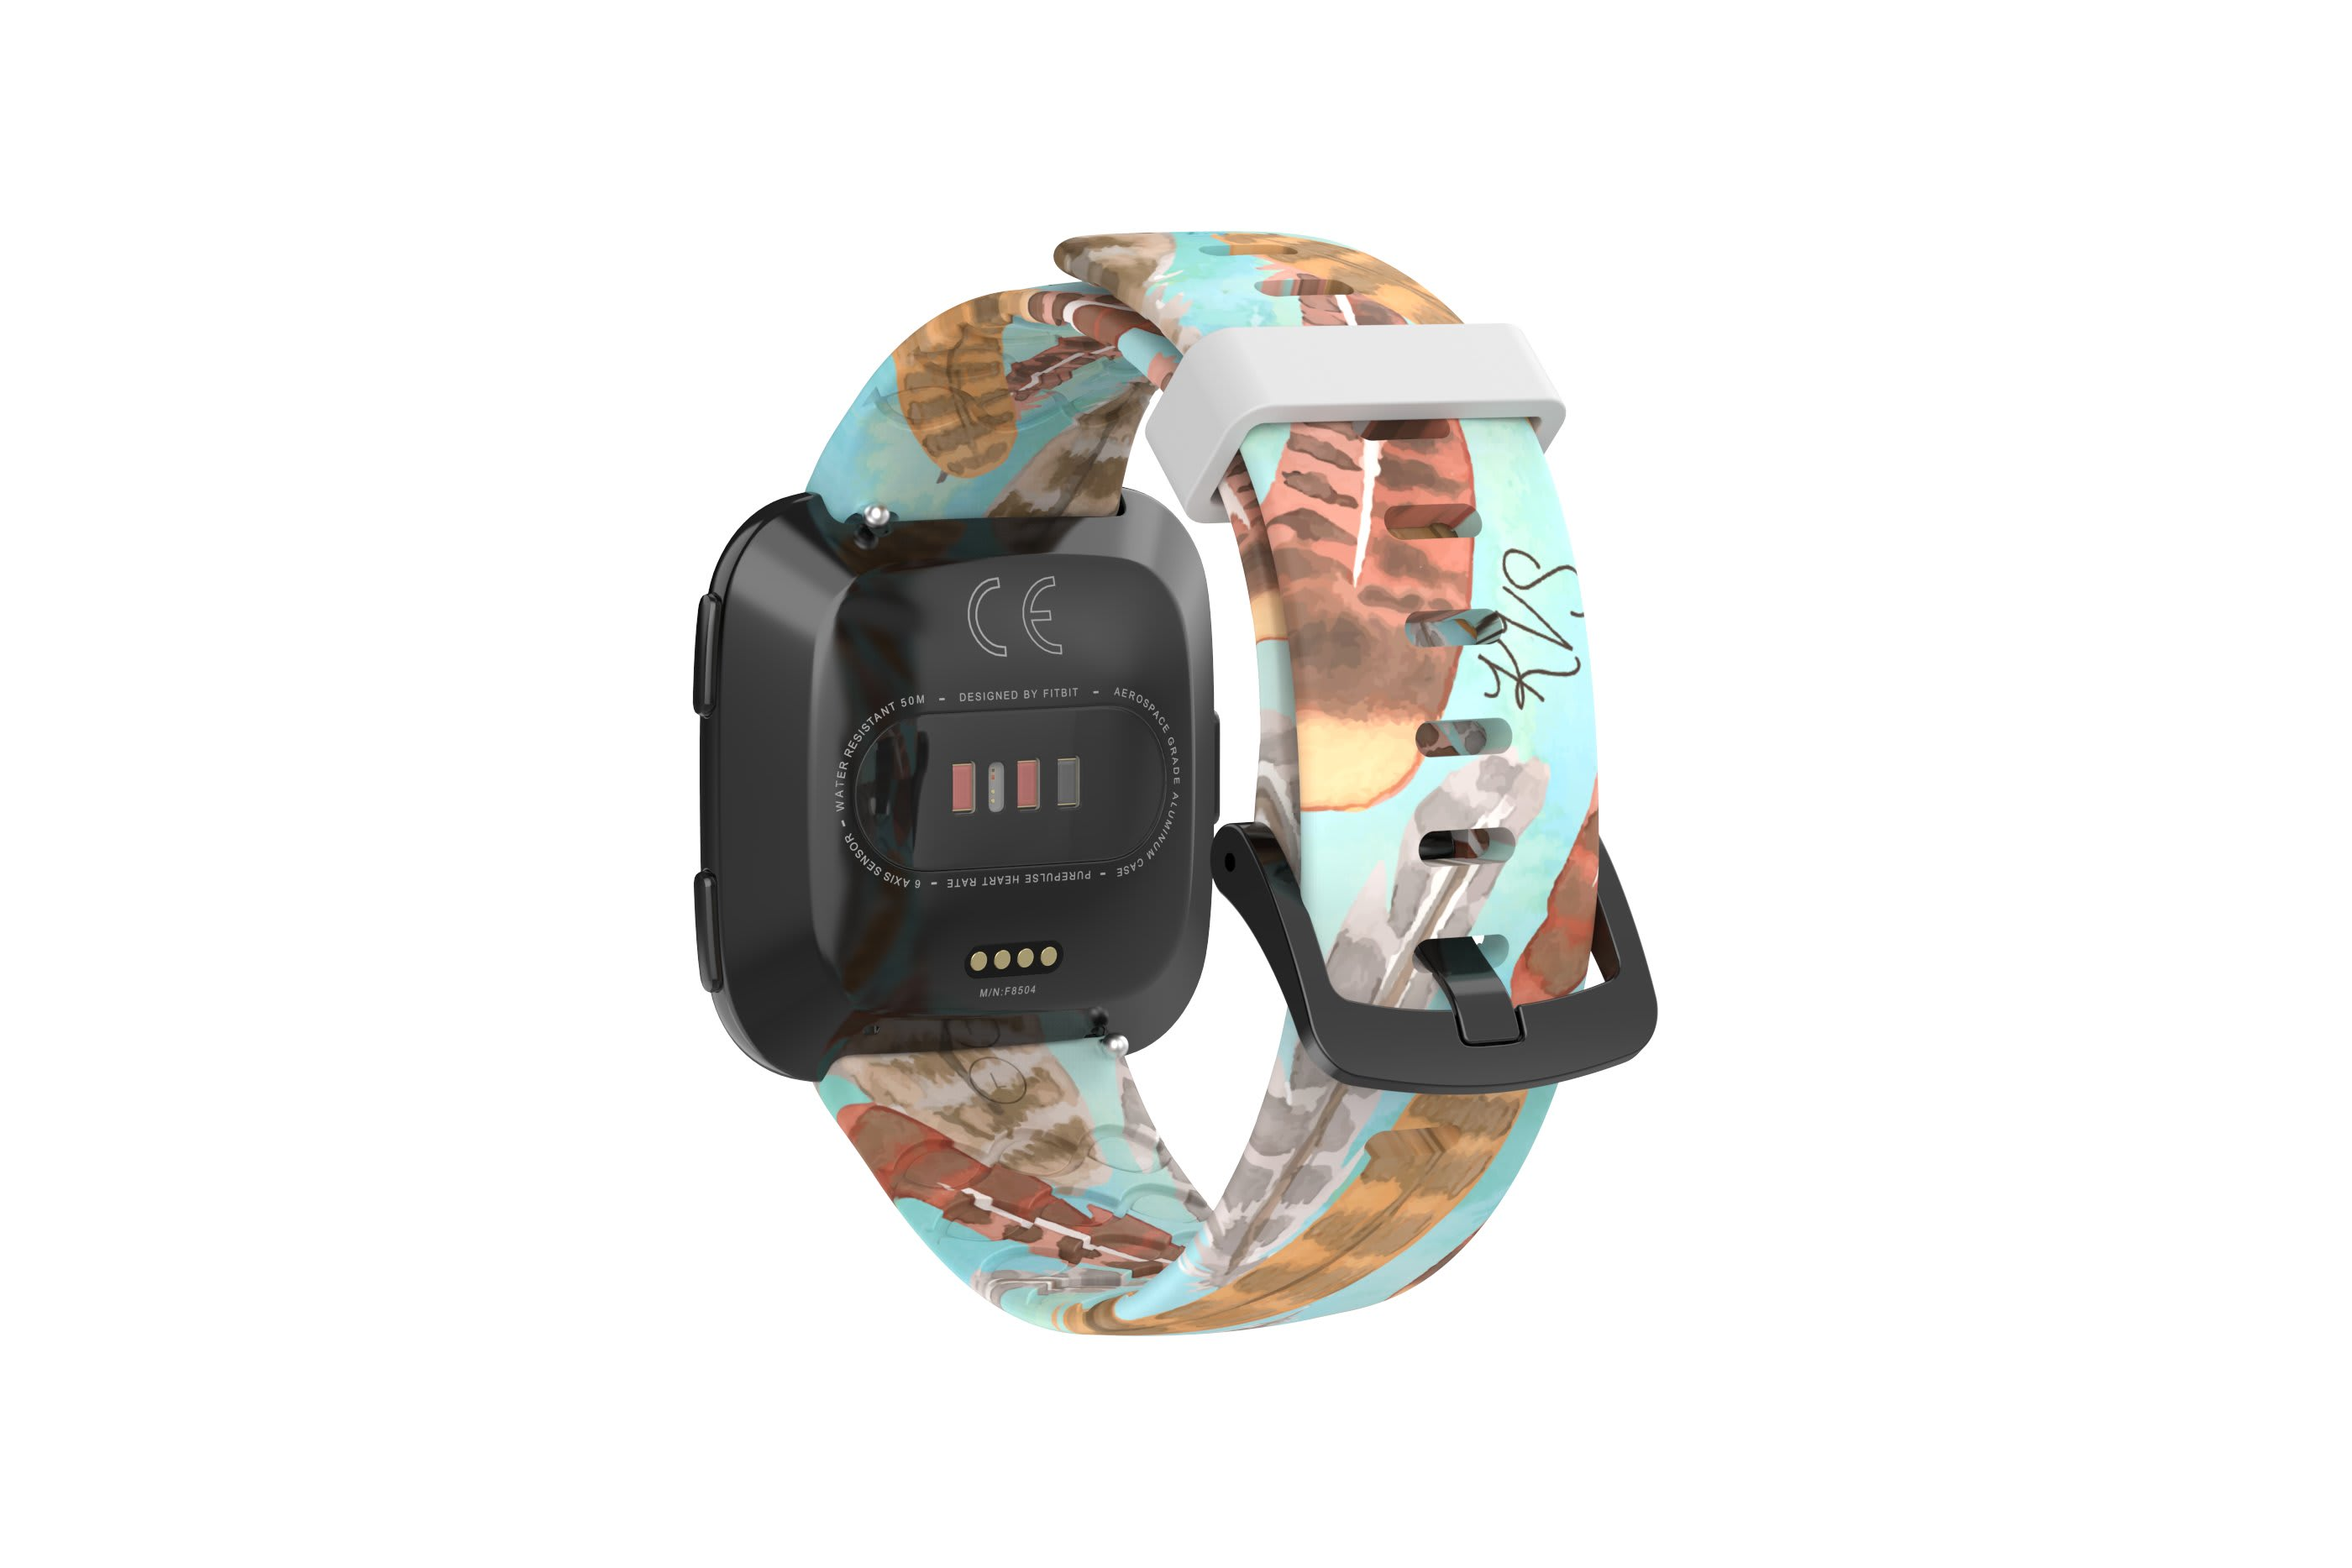 Brave - Katie Van Slyke fitbit versa watch band with gray hardware viewed from rear